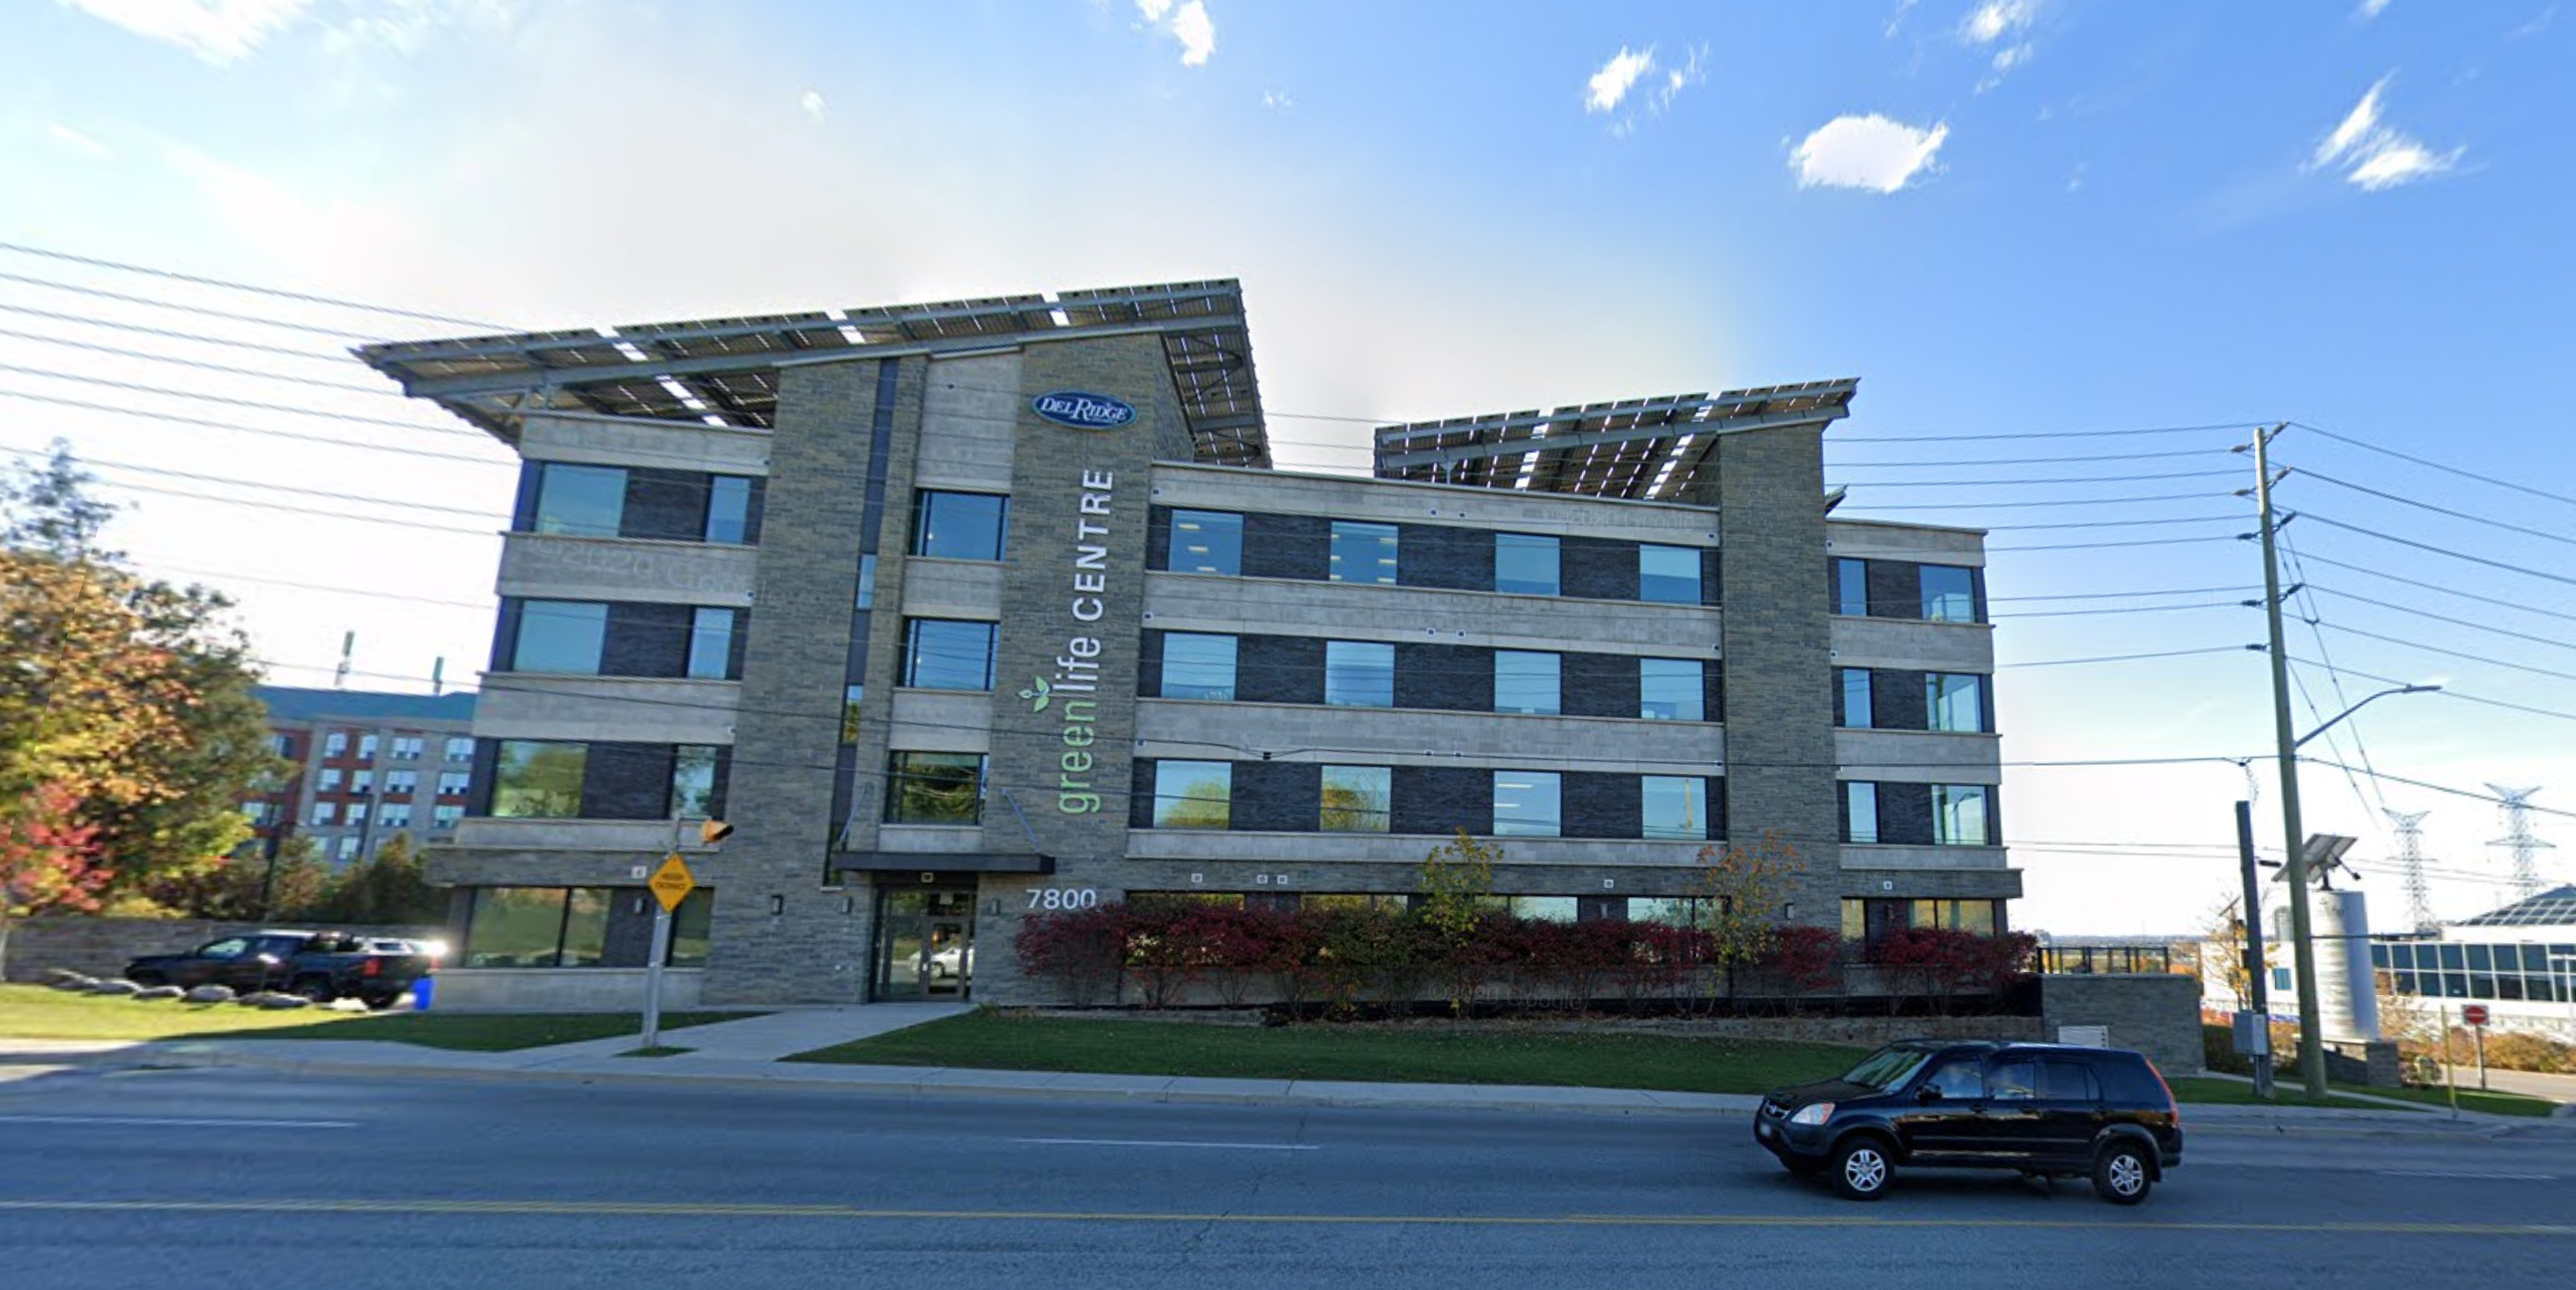 New Location Starting Aug 5, 2021. GreenLife Centre Markham, 7800 Kennedy Rd, #305